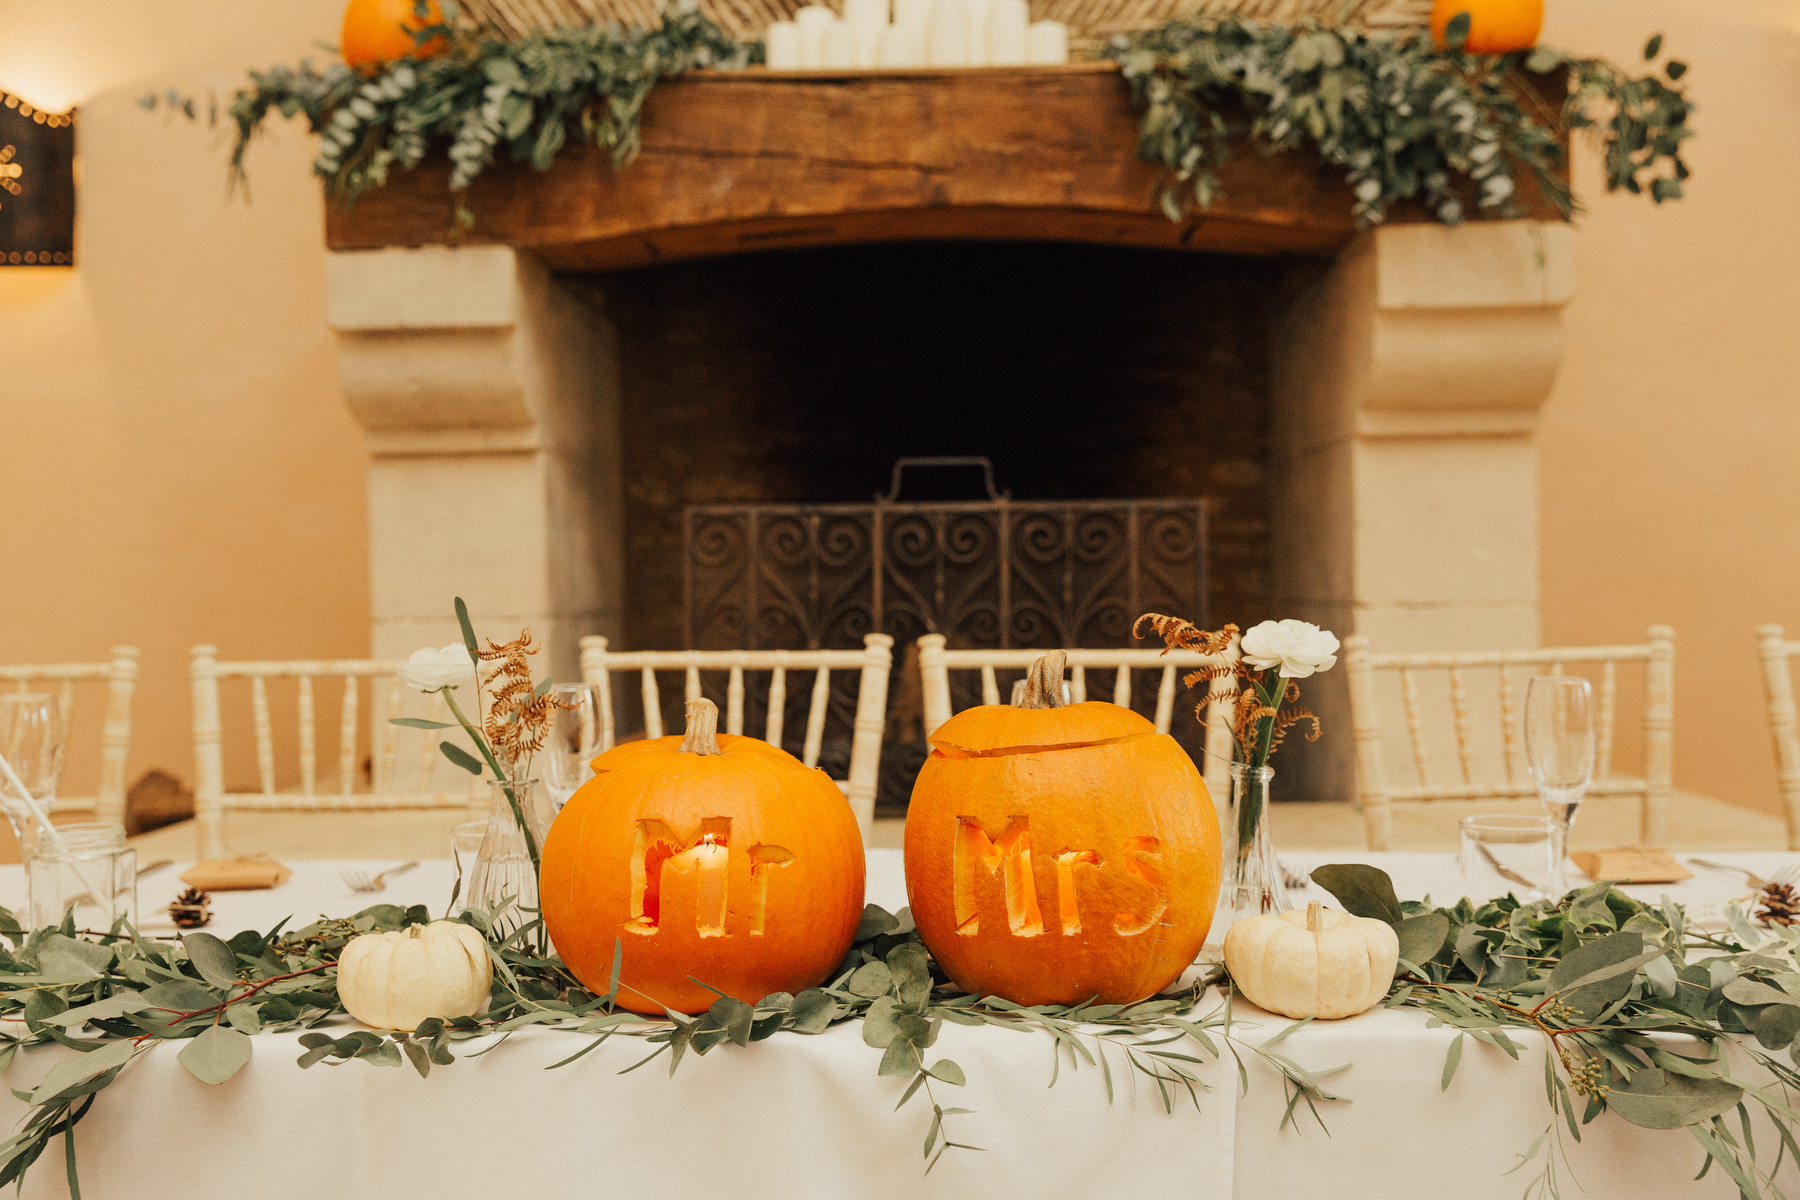 Pumpkin Wedding Decor For A Laid Back Boho Wedding In Autumn With Bride In Grace Loves Lace Wedding Dress